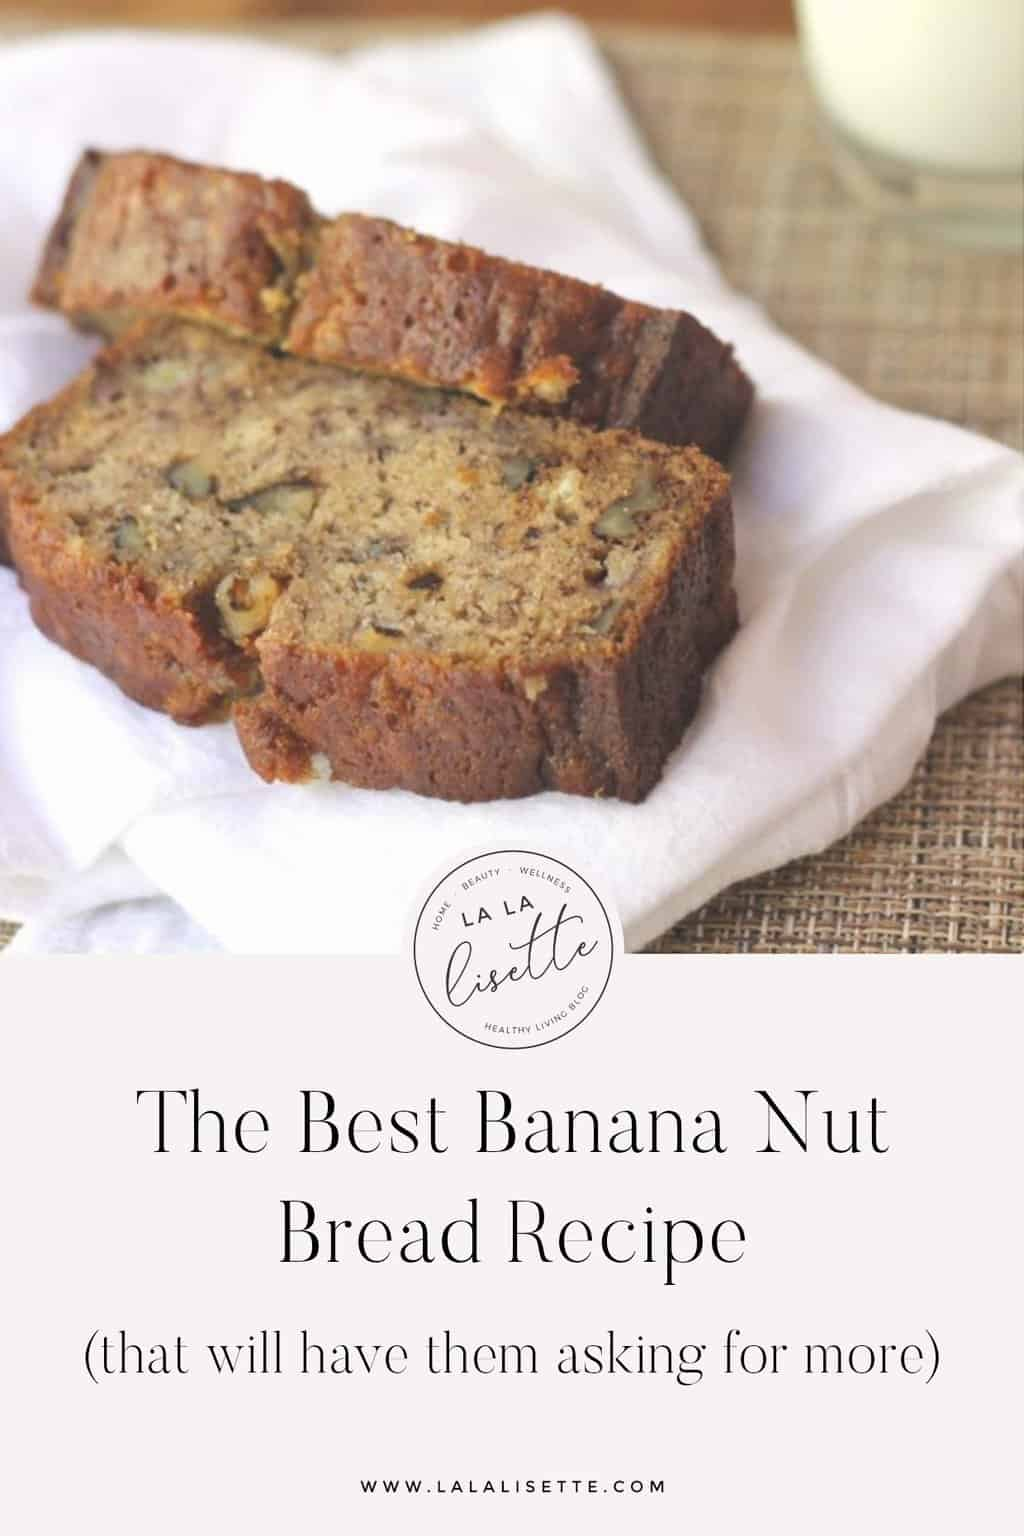 photo with the text: The Best Banana Nut Bread Recipe